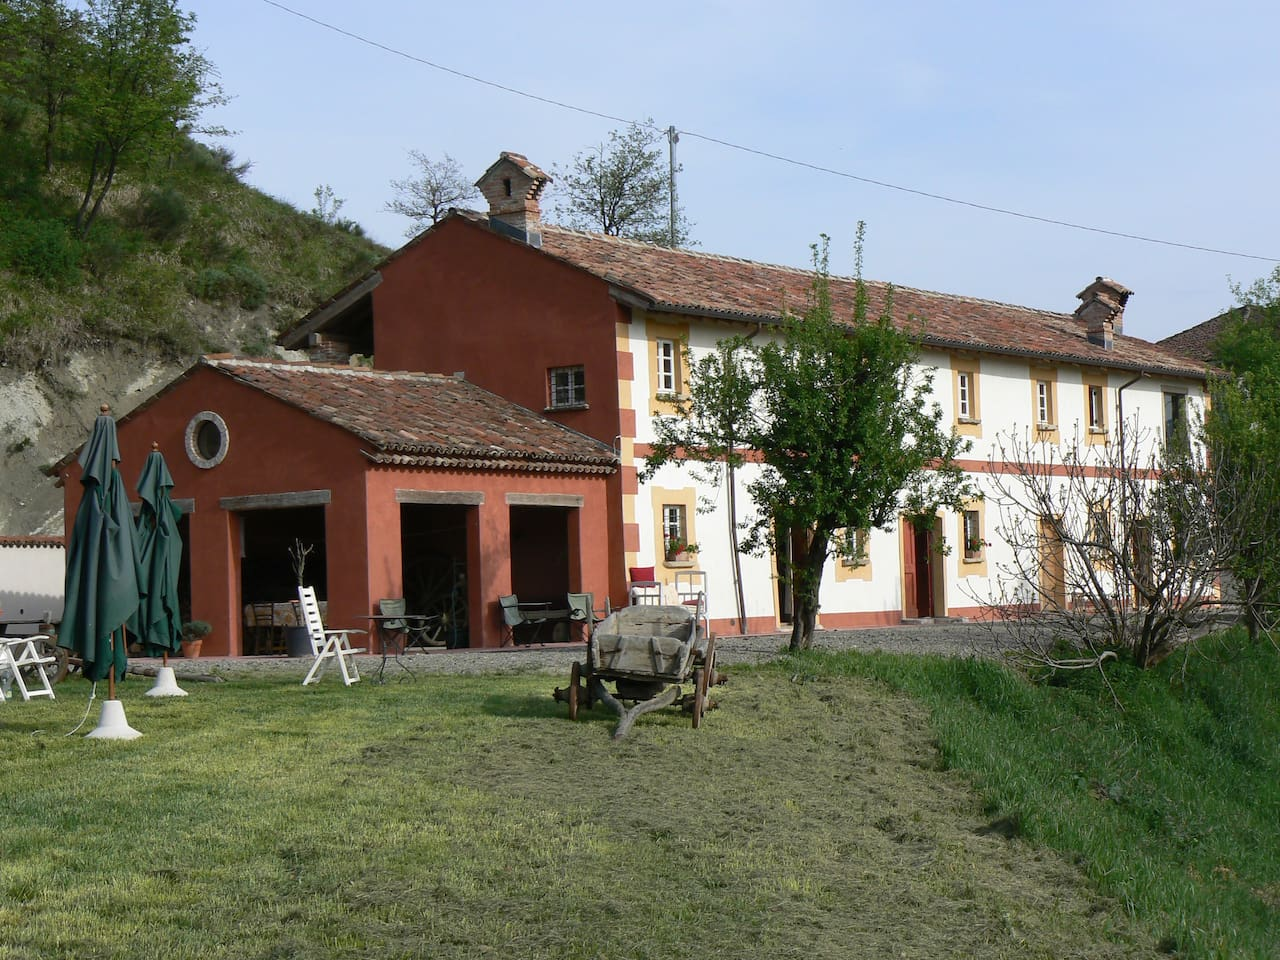 La Zerbetta is the apartment in the middle of the house